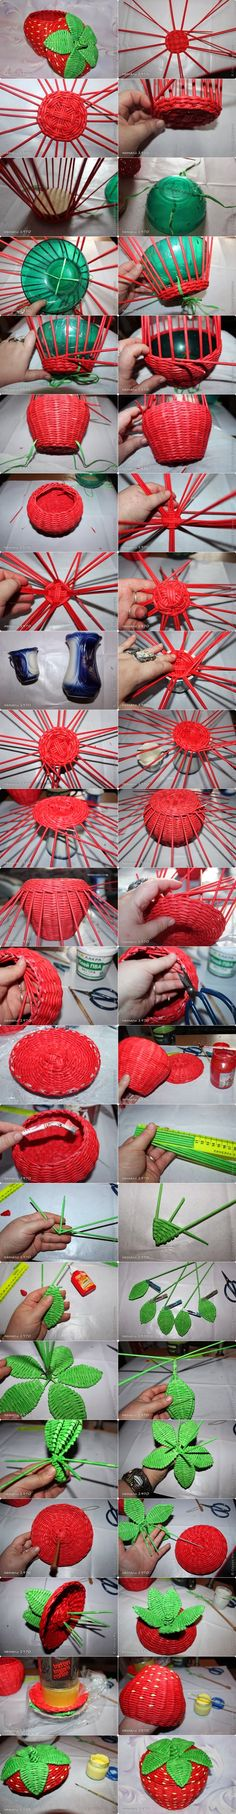 DIY Woven Strawberry Shaped Basket from Recycled Newspaper | www.FabArtDIY.com LIKE Us on Facebook == https://www.facebook.com/FabArtDIY